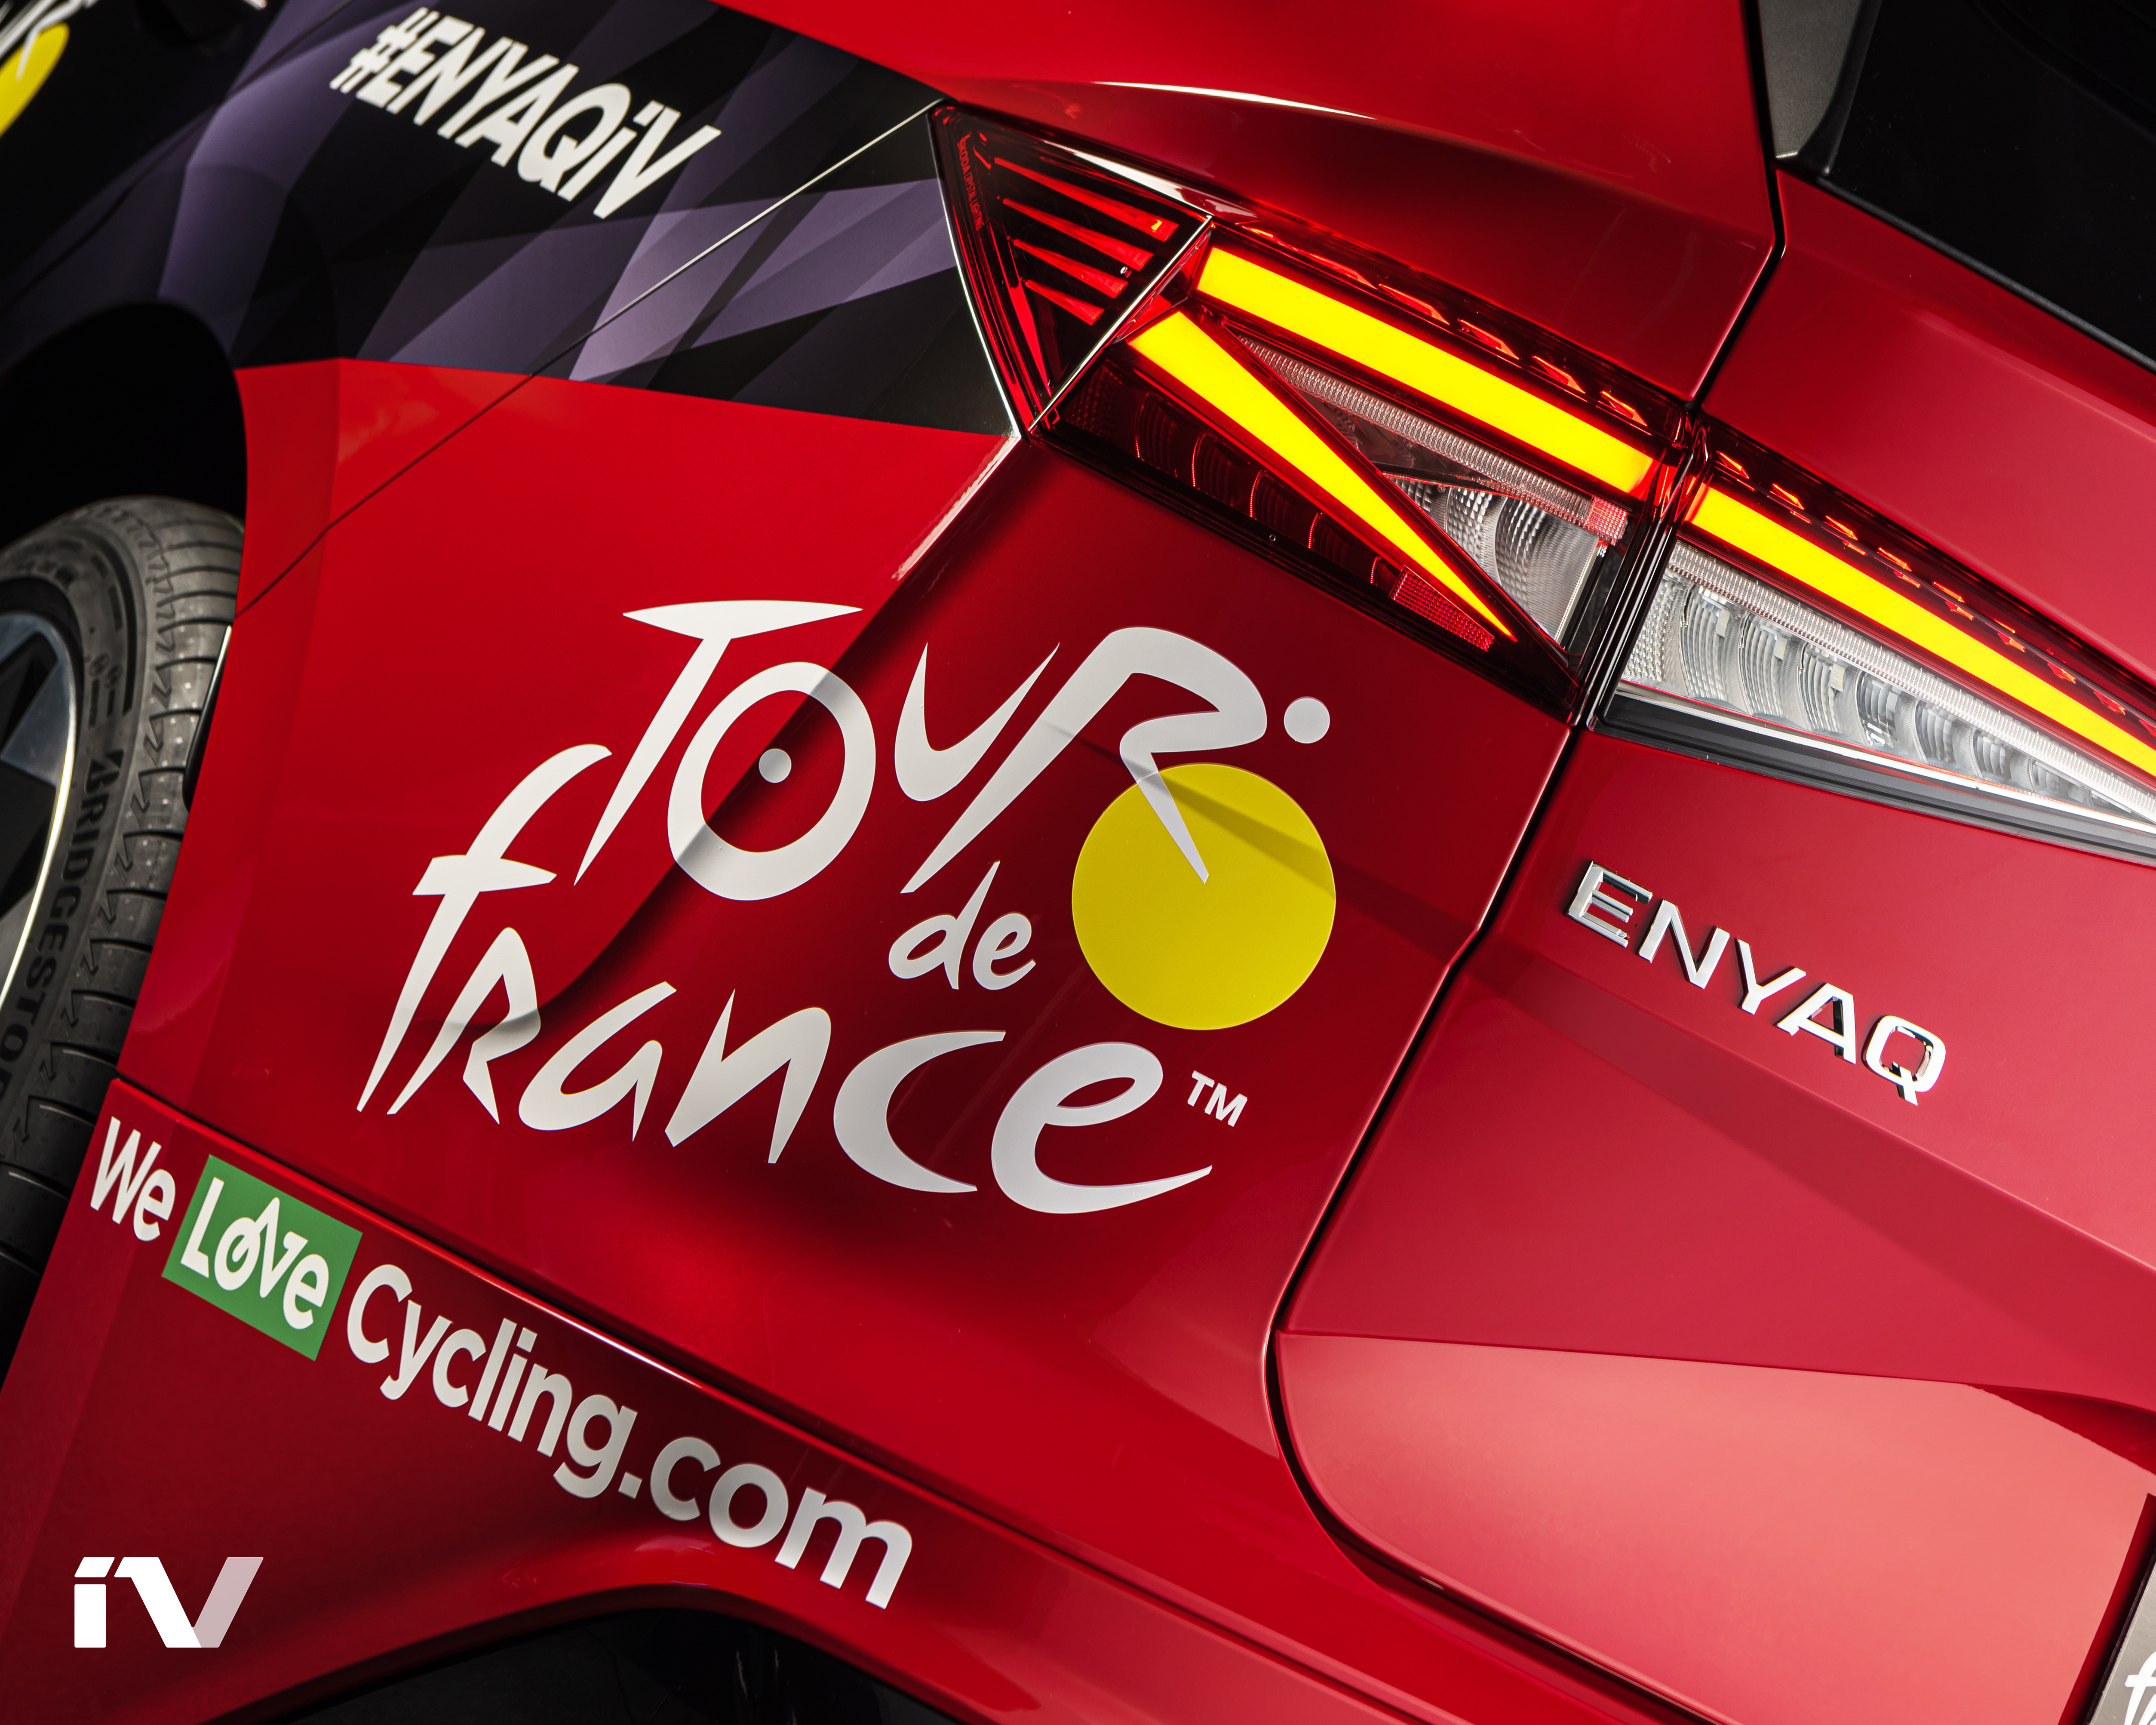 SKODA ENYAQ iV makes its debut as the lead vehicle in the Tour de France - Image 1